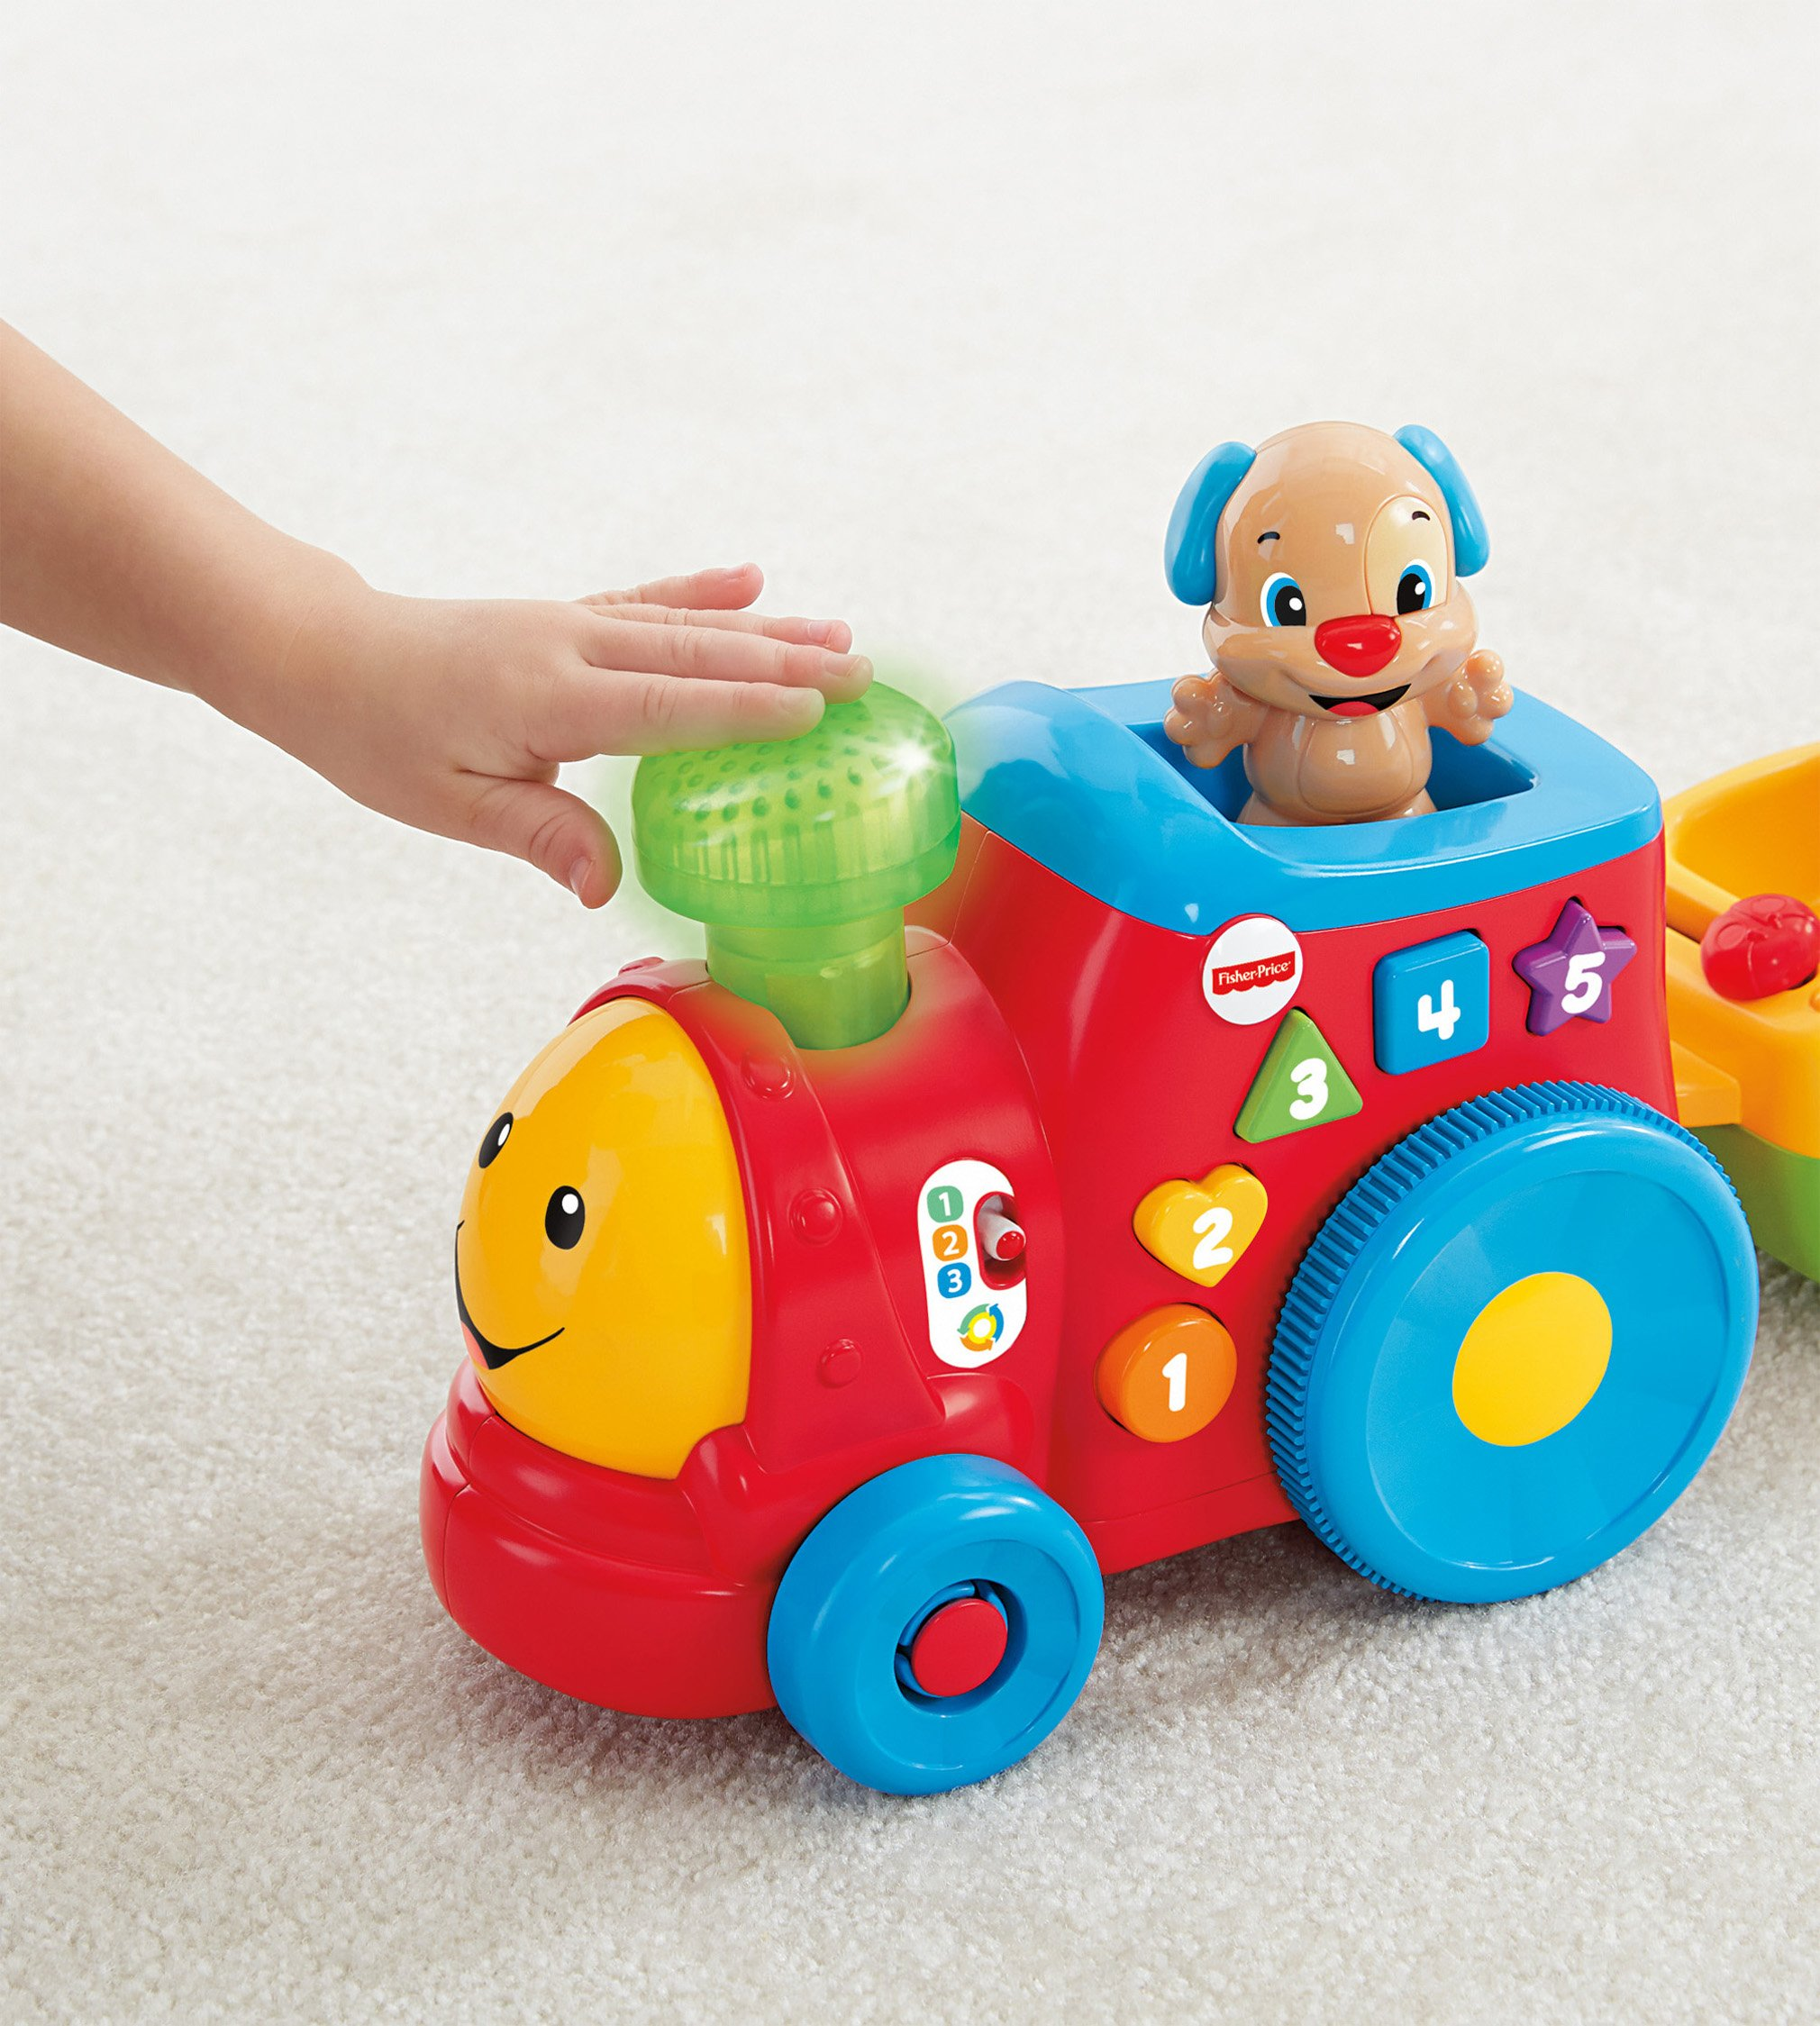 Fisher-Price Laugh & Learn Smart Stages Puppy's Smart Train by Fisher-Price (Image #14)